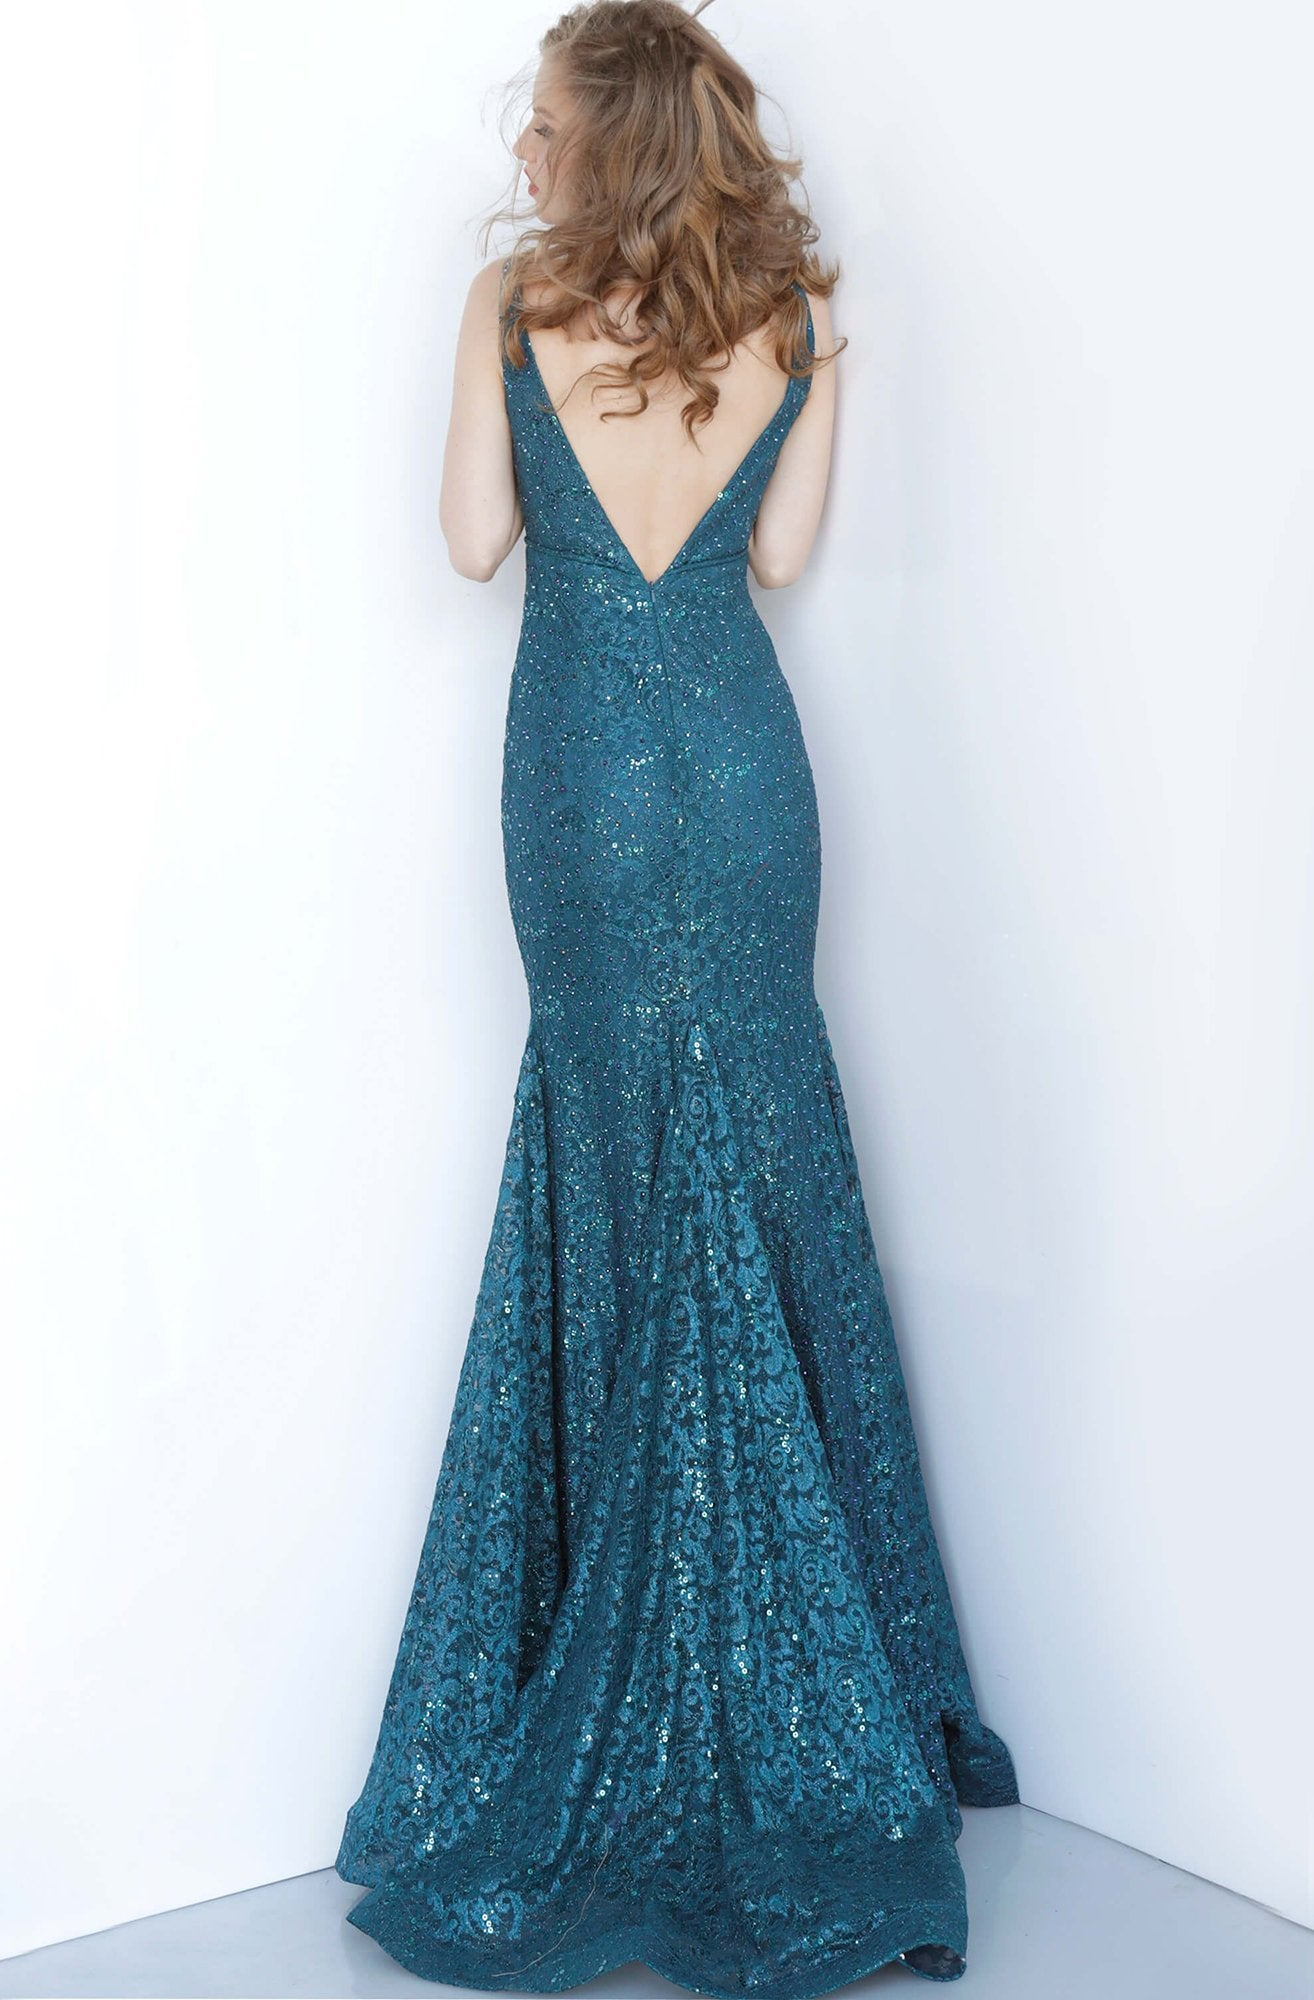 Jovani - 2967 Plunging Neckline Sleeveless Beaded Lace Mermaid Gown In Blue and Green